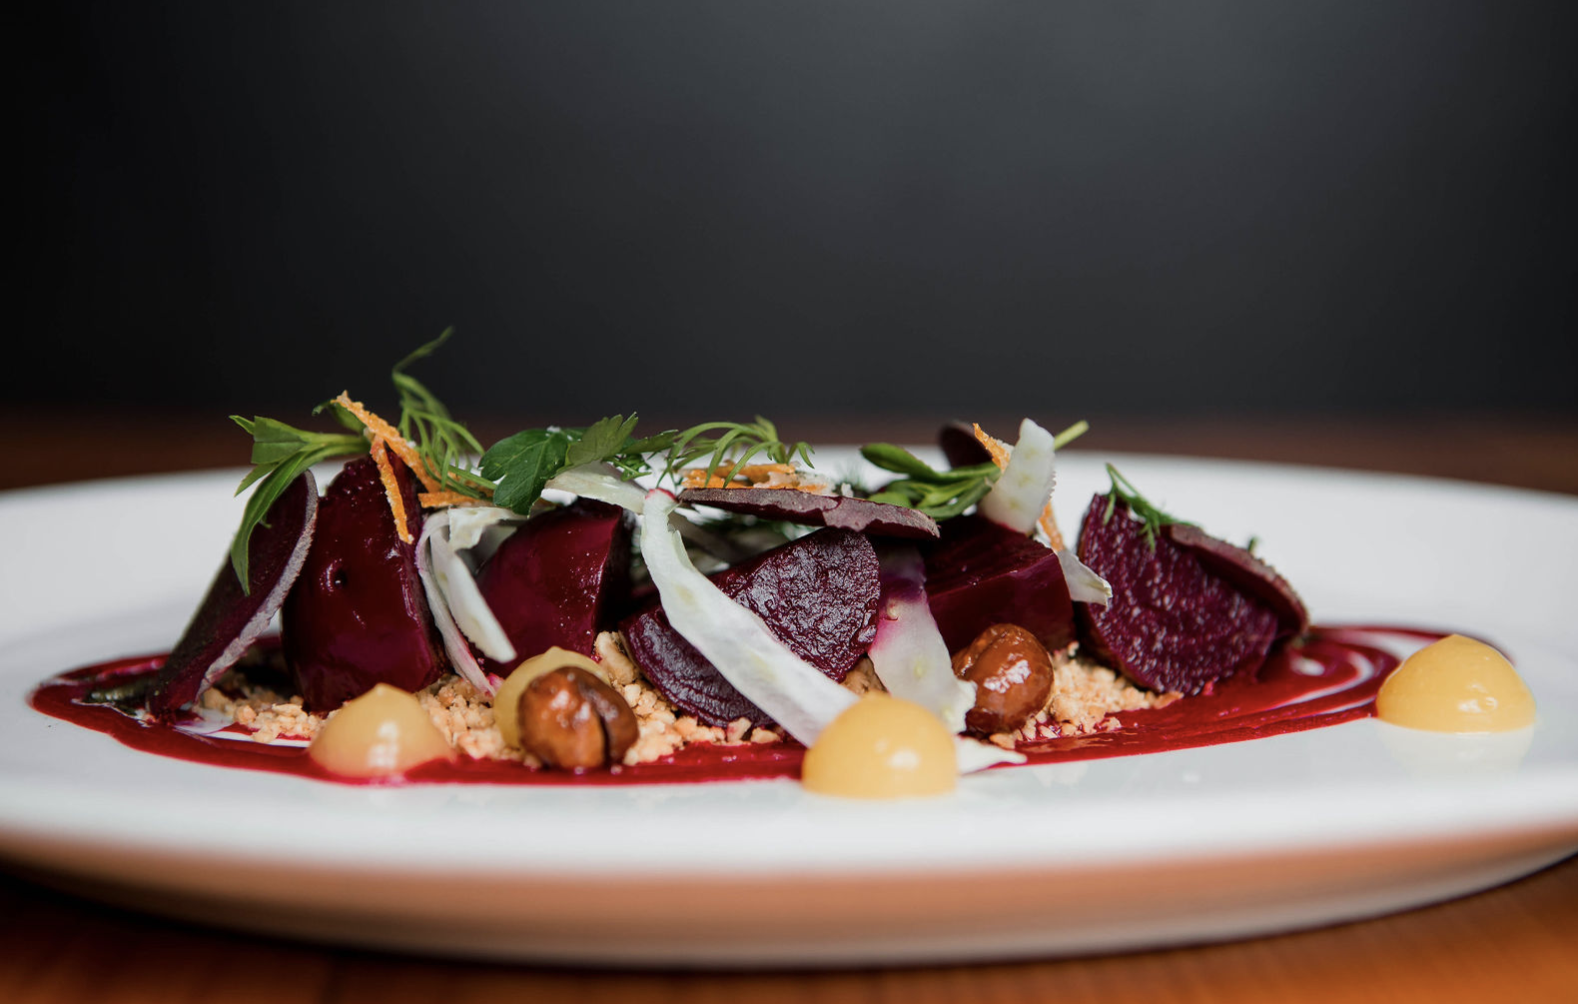 Roasted beets with citrus, fennel, and hazelnuts on a white plate at Local 360